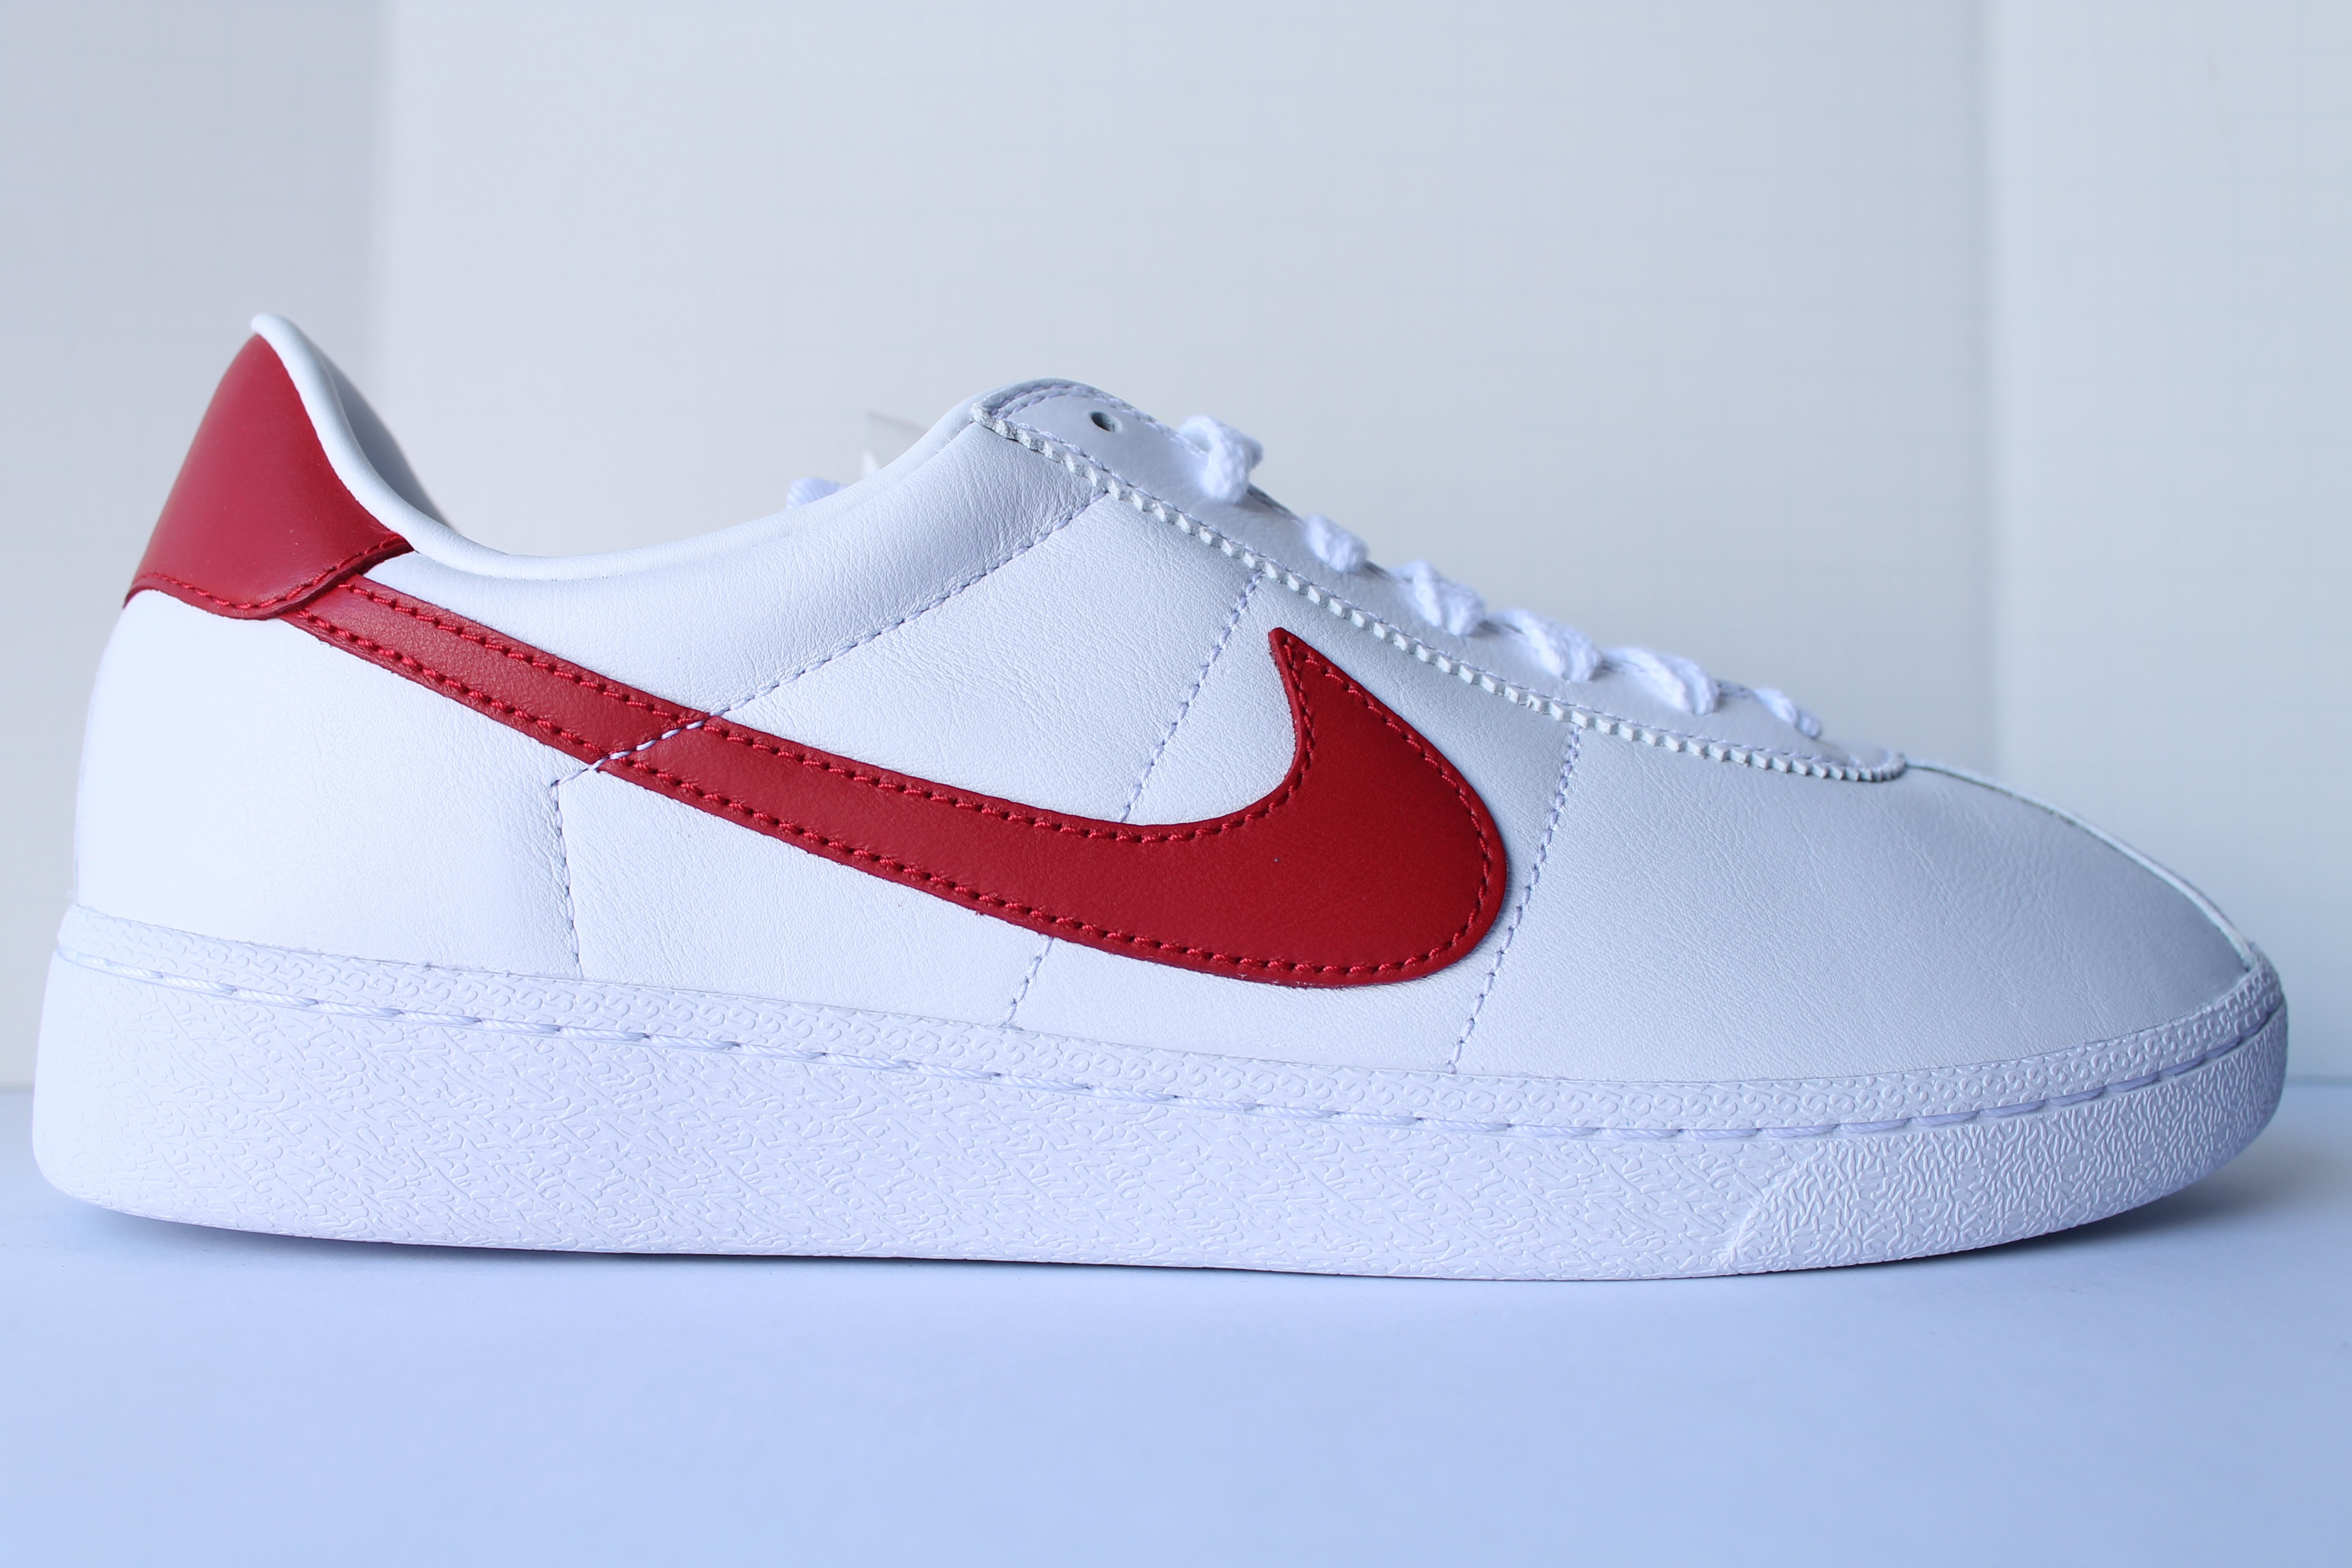 save off 64f24 2bf01 Nike Bruin Leather Marty McFly Back to the Future 1985